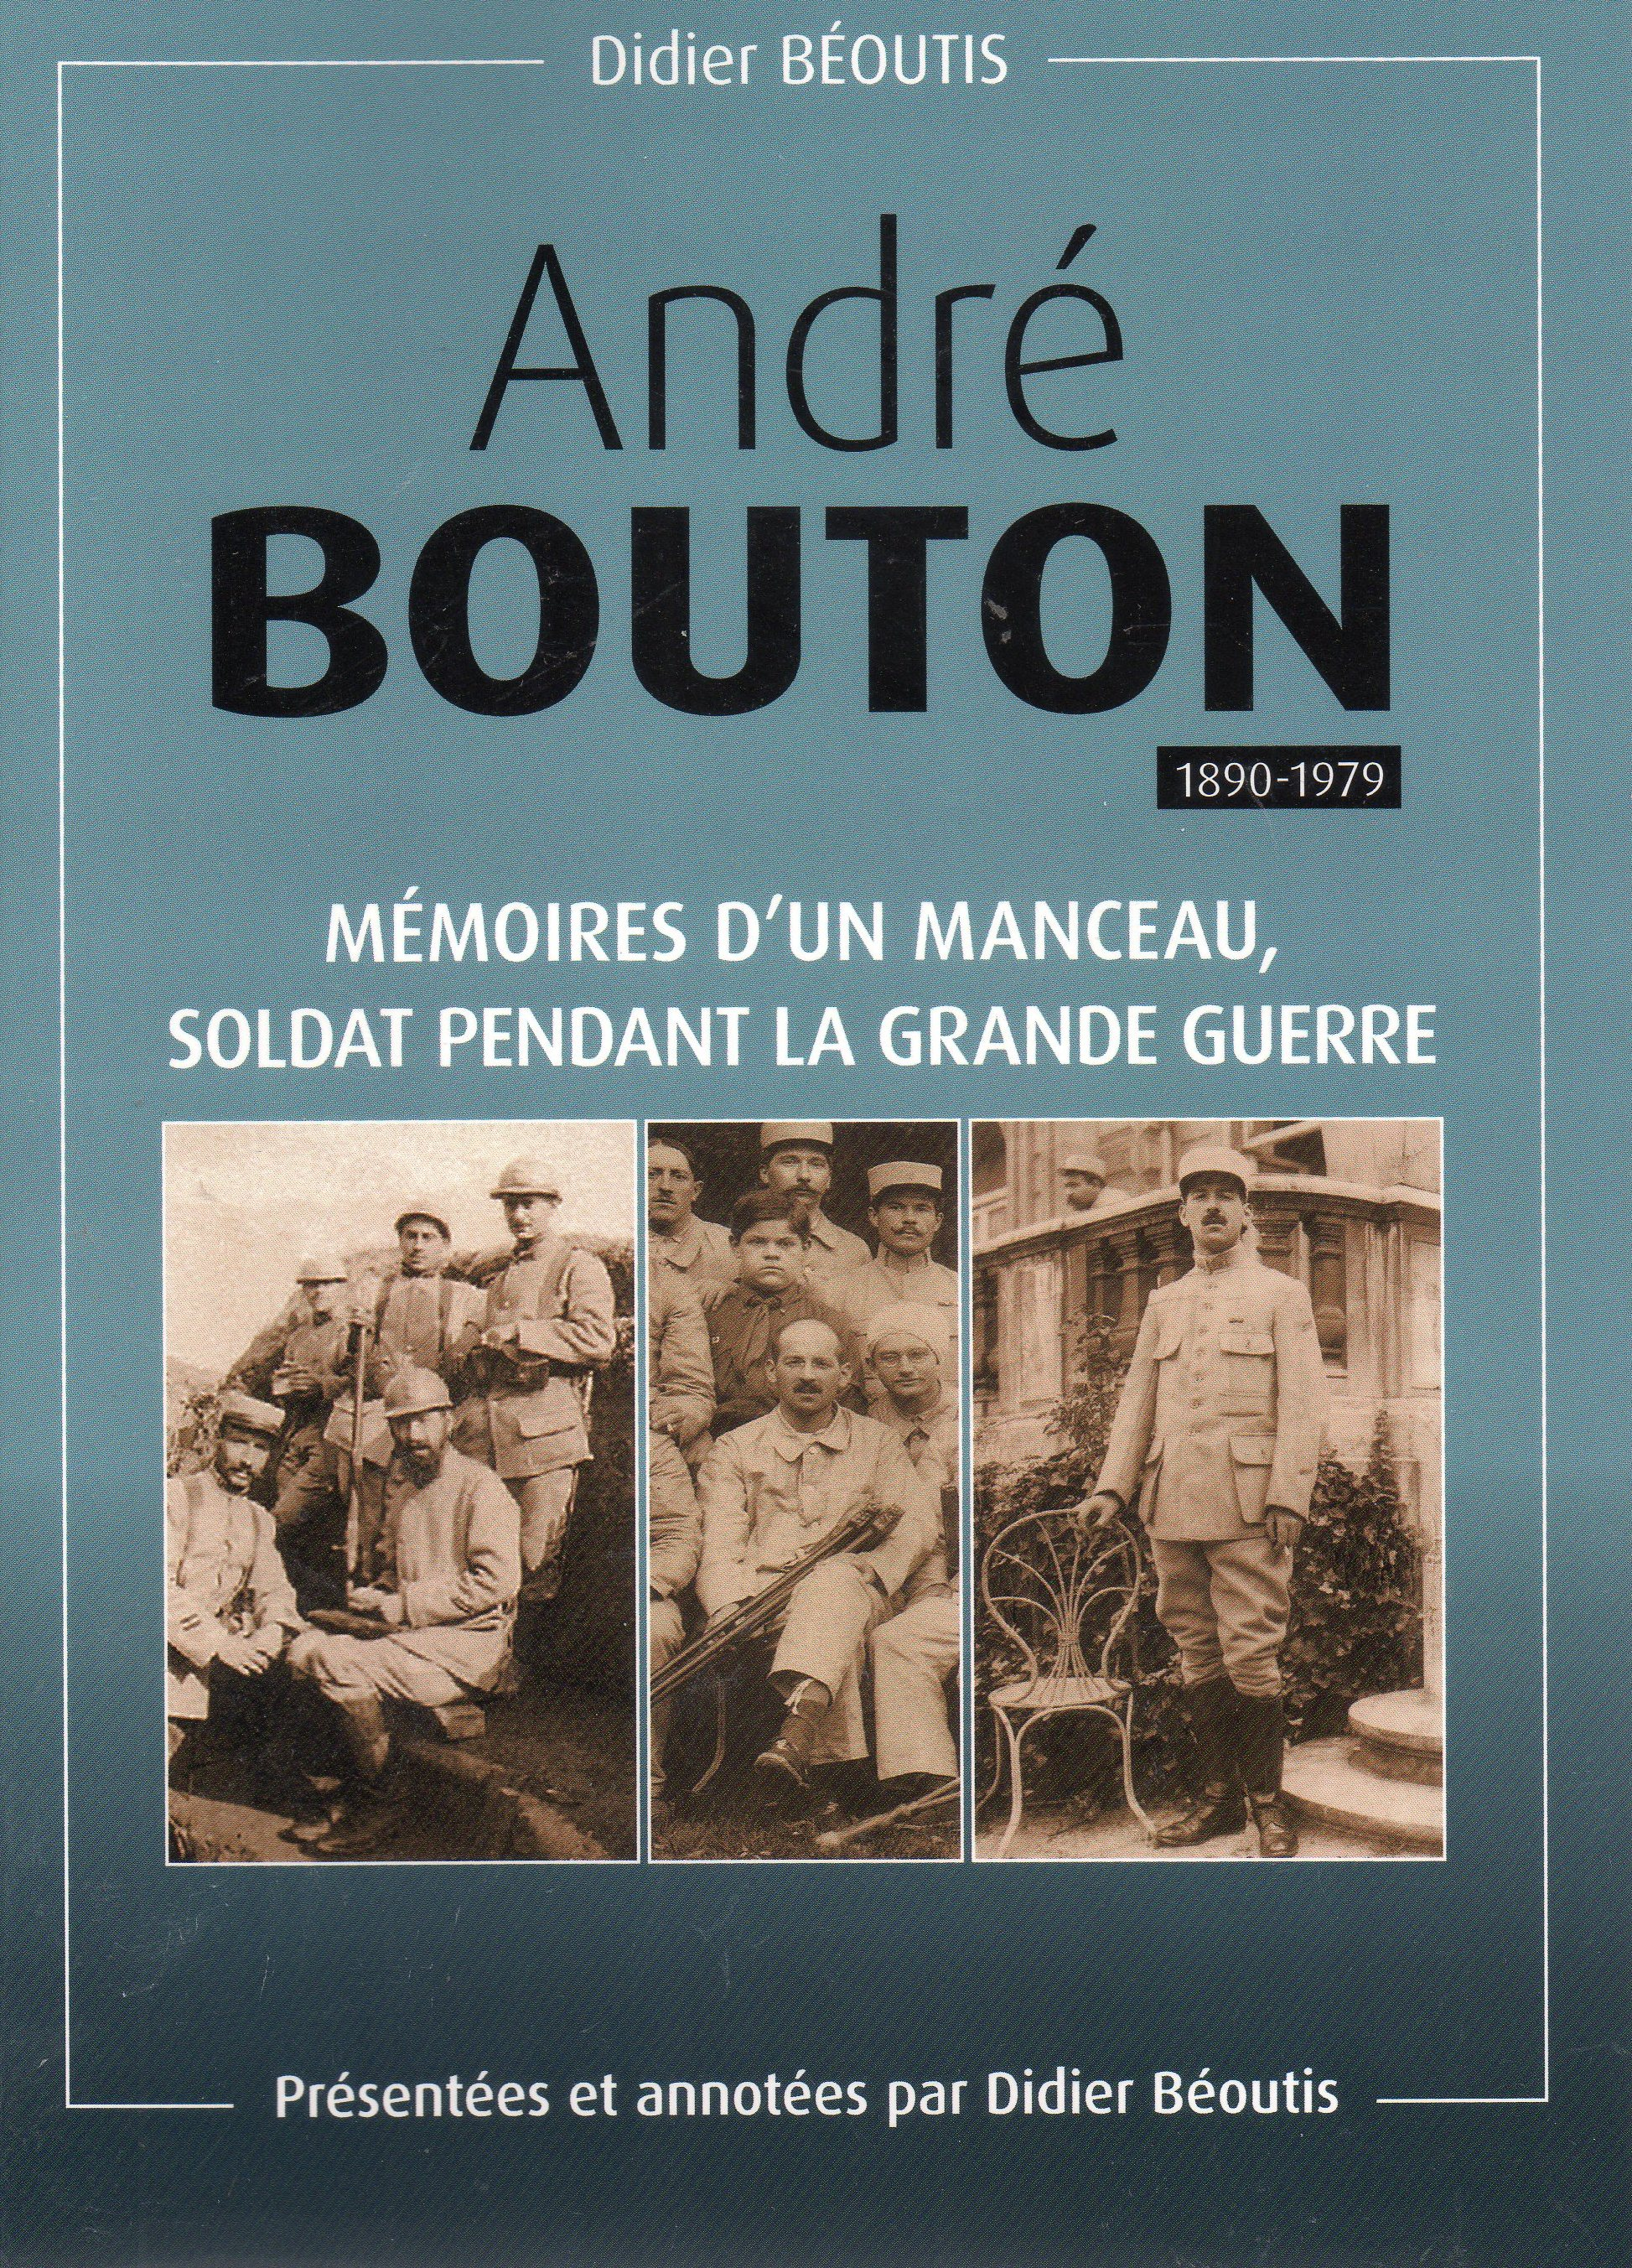 https://static.blog4ever.com/2015/02/794874/A.-Bouton-cote-6029.jpg